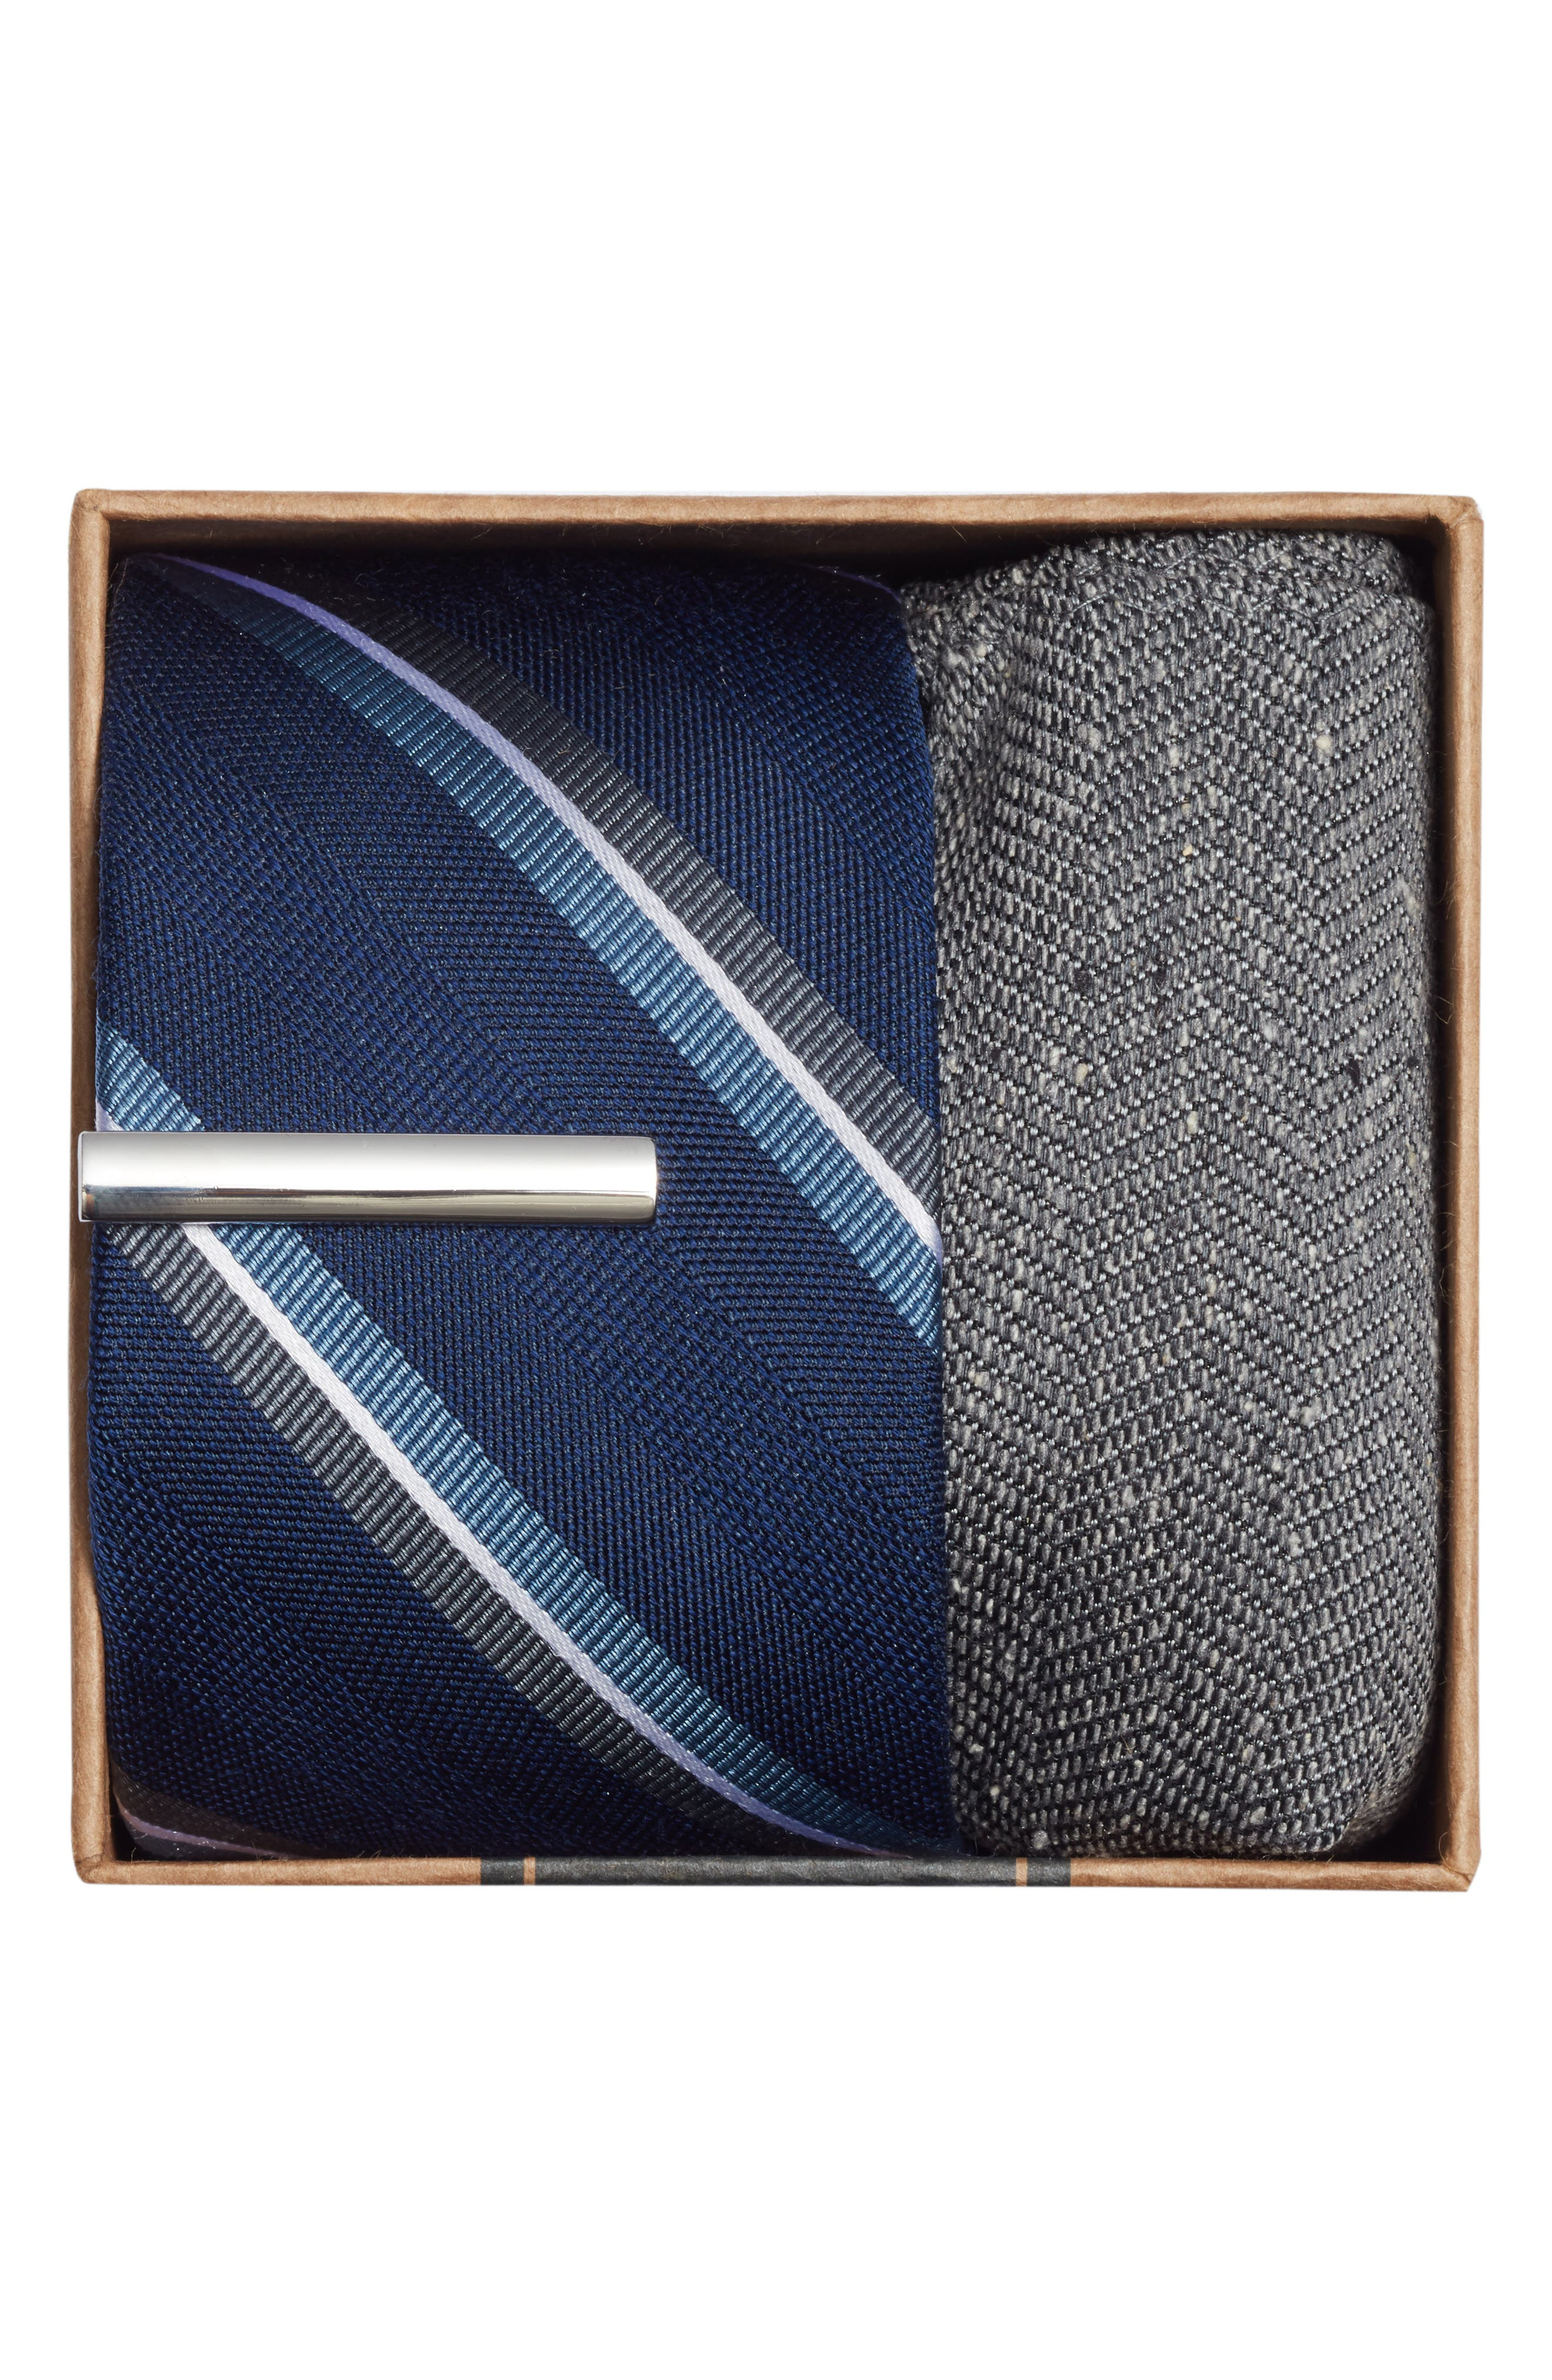 Short Cut Stripe 3-Piece Skinny Tie Style Box,                             Alternate thumbnail 2, color,                             Navy